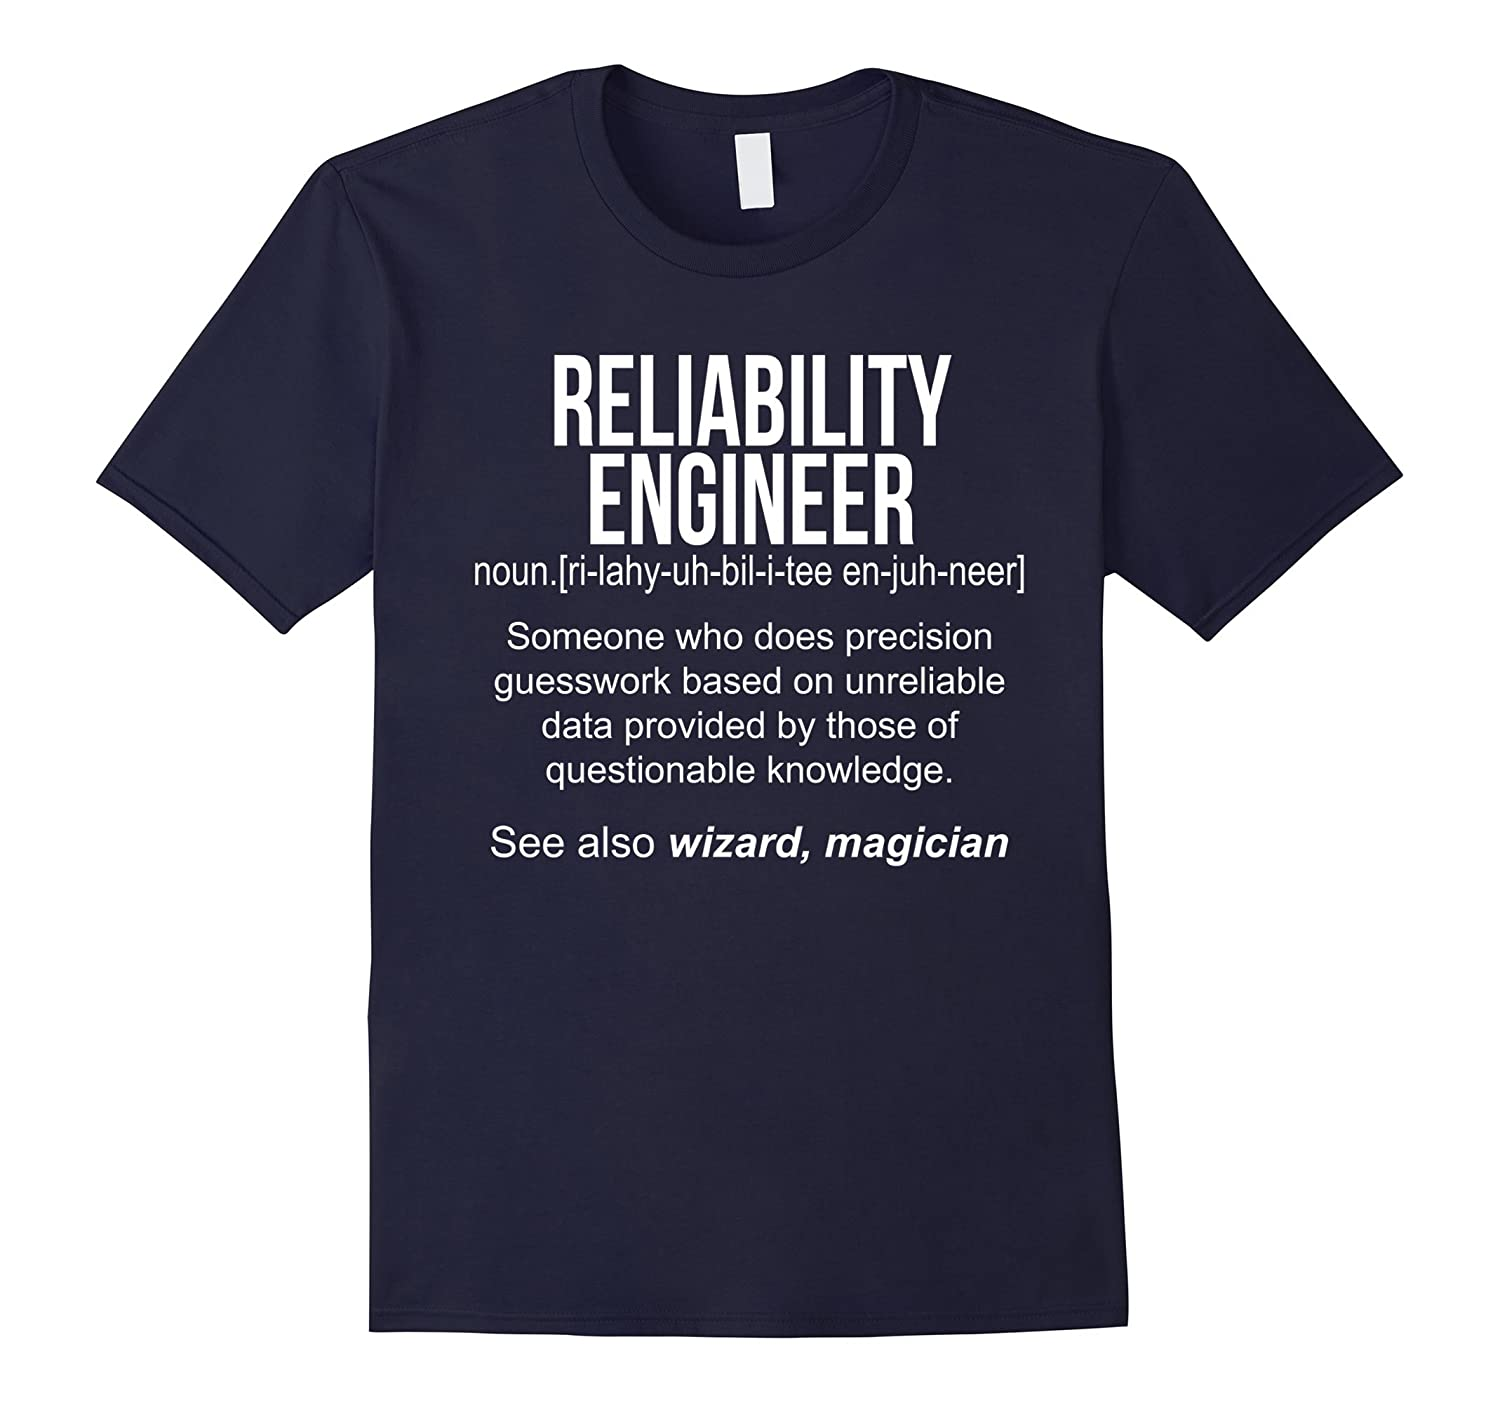 Reliability Engineer Meaning Shirt - Reliability Engineer Fu-RT